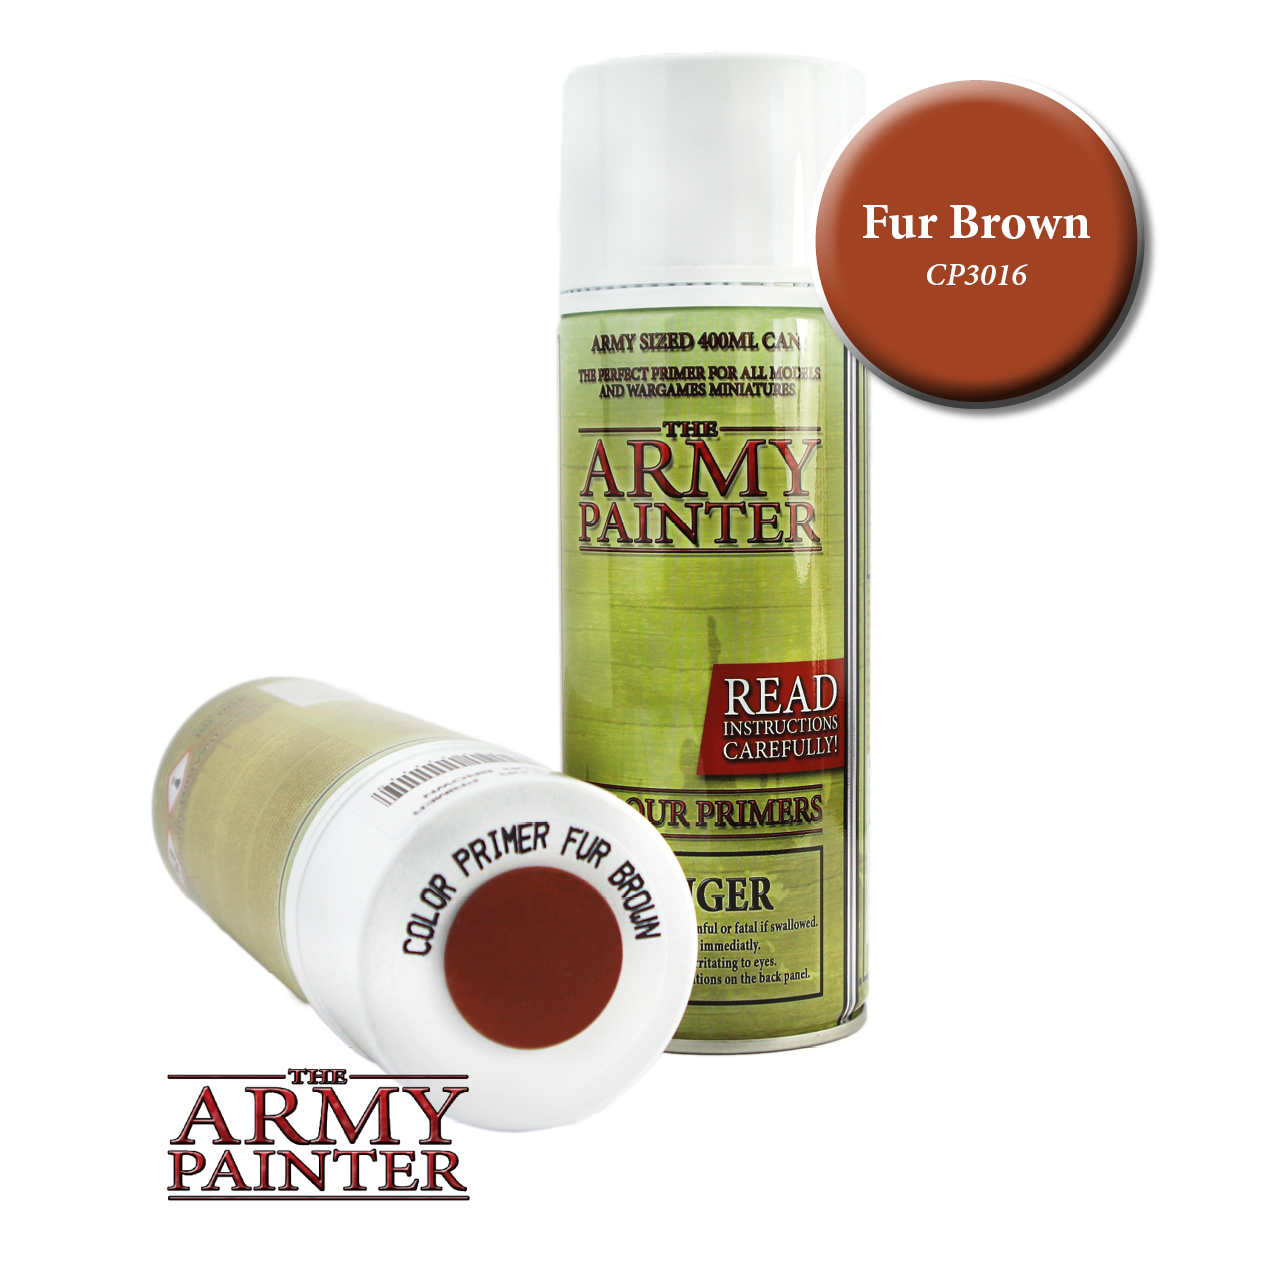 Army Painter - Spray Primer - Fur Brown (Pickup Only) | Elandrial Games Albany